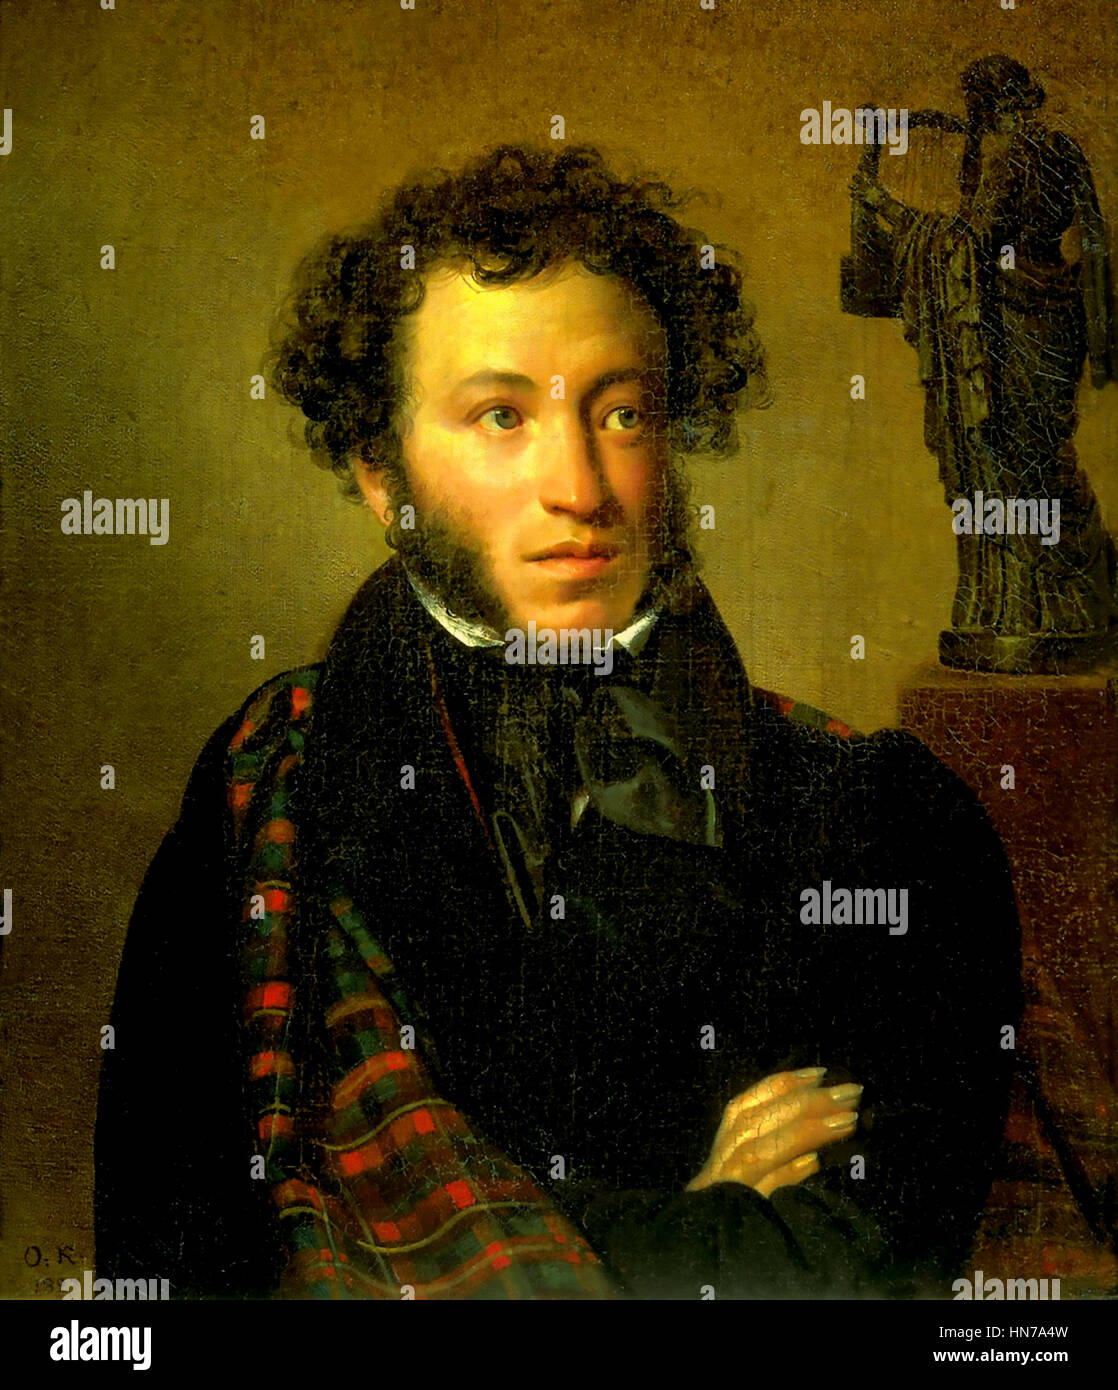 ALEXANDER PUSHKIN (1799-1837) Russian writer and poet in an 1827  painting by Orest Kiprensy - Stock Image